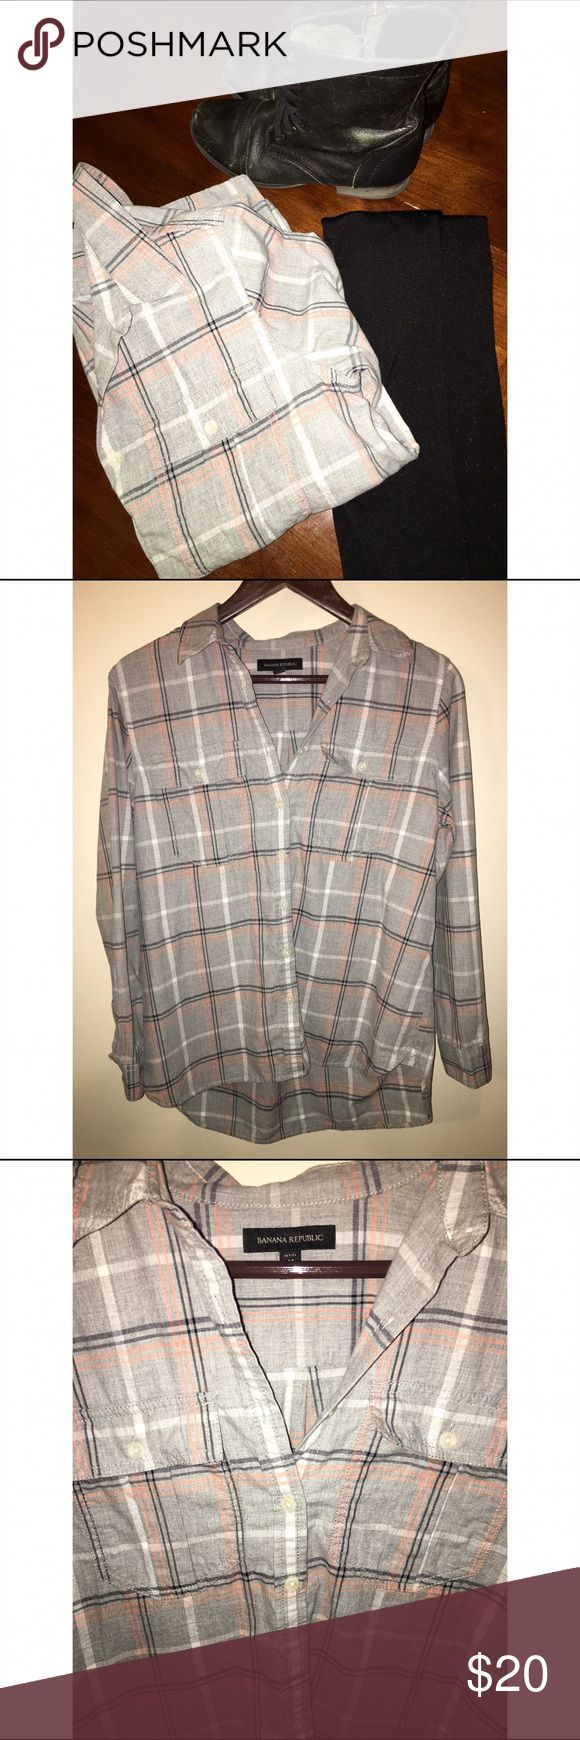 Lightweight Banana Republic plaid button down Light colors; thin material. Looks great with black leggings and boots! Colors: Gray, White, Black, Pink-Orange. Banana Republic Tops Button Down Shirts